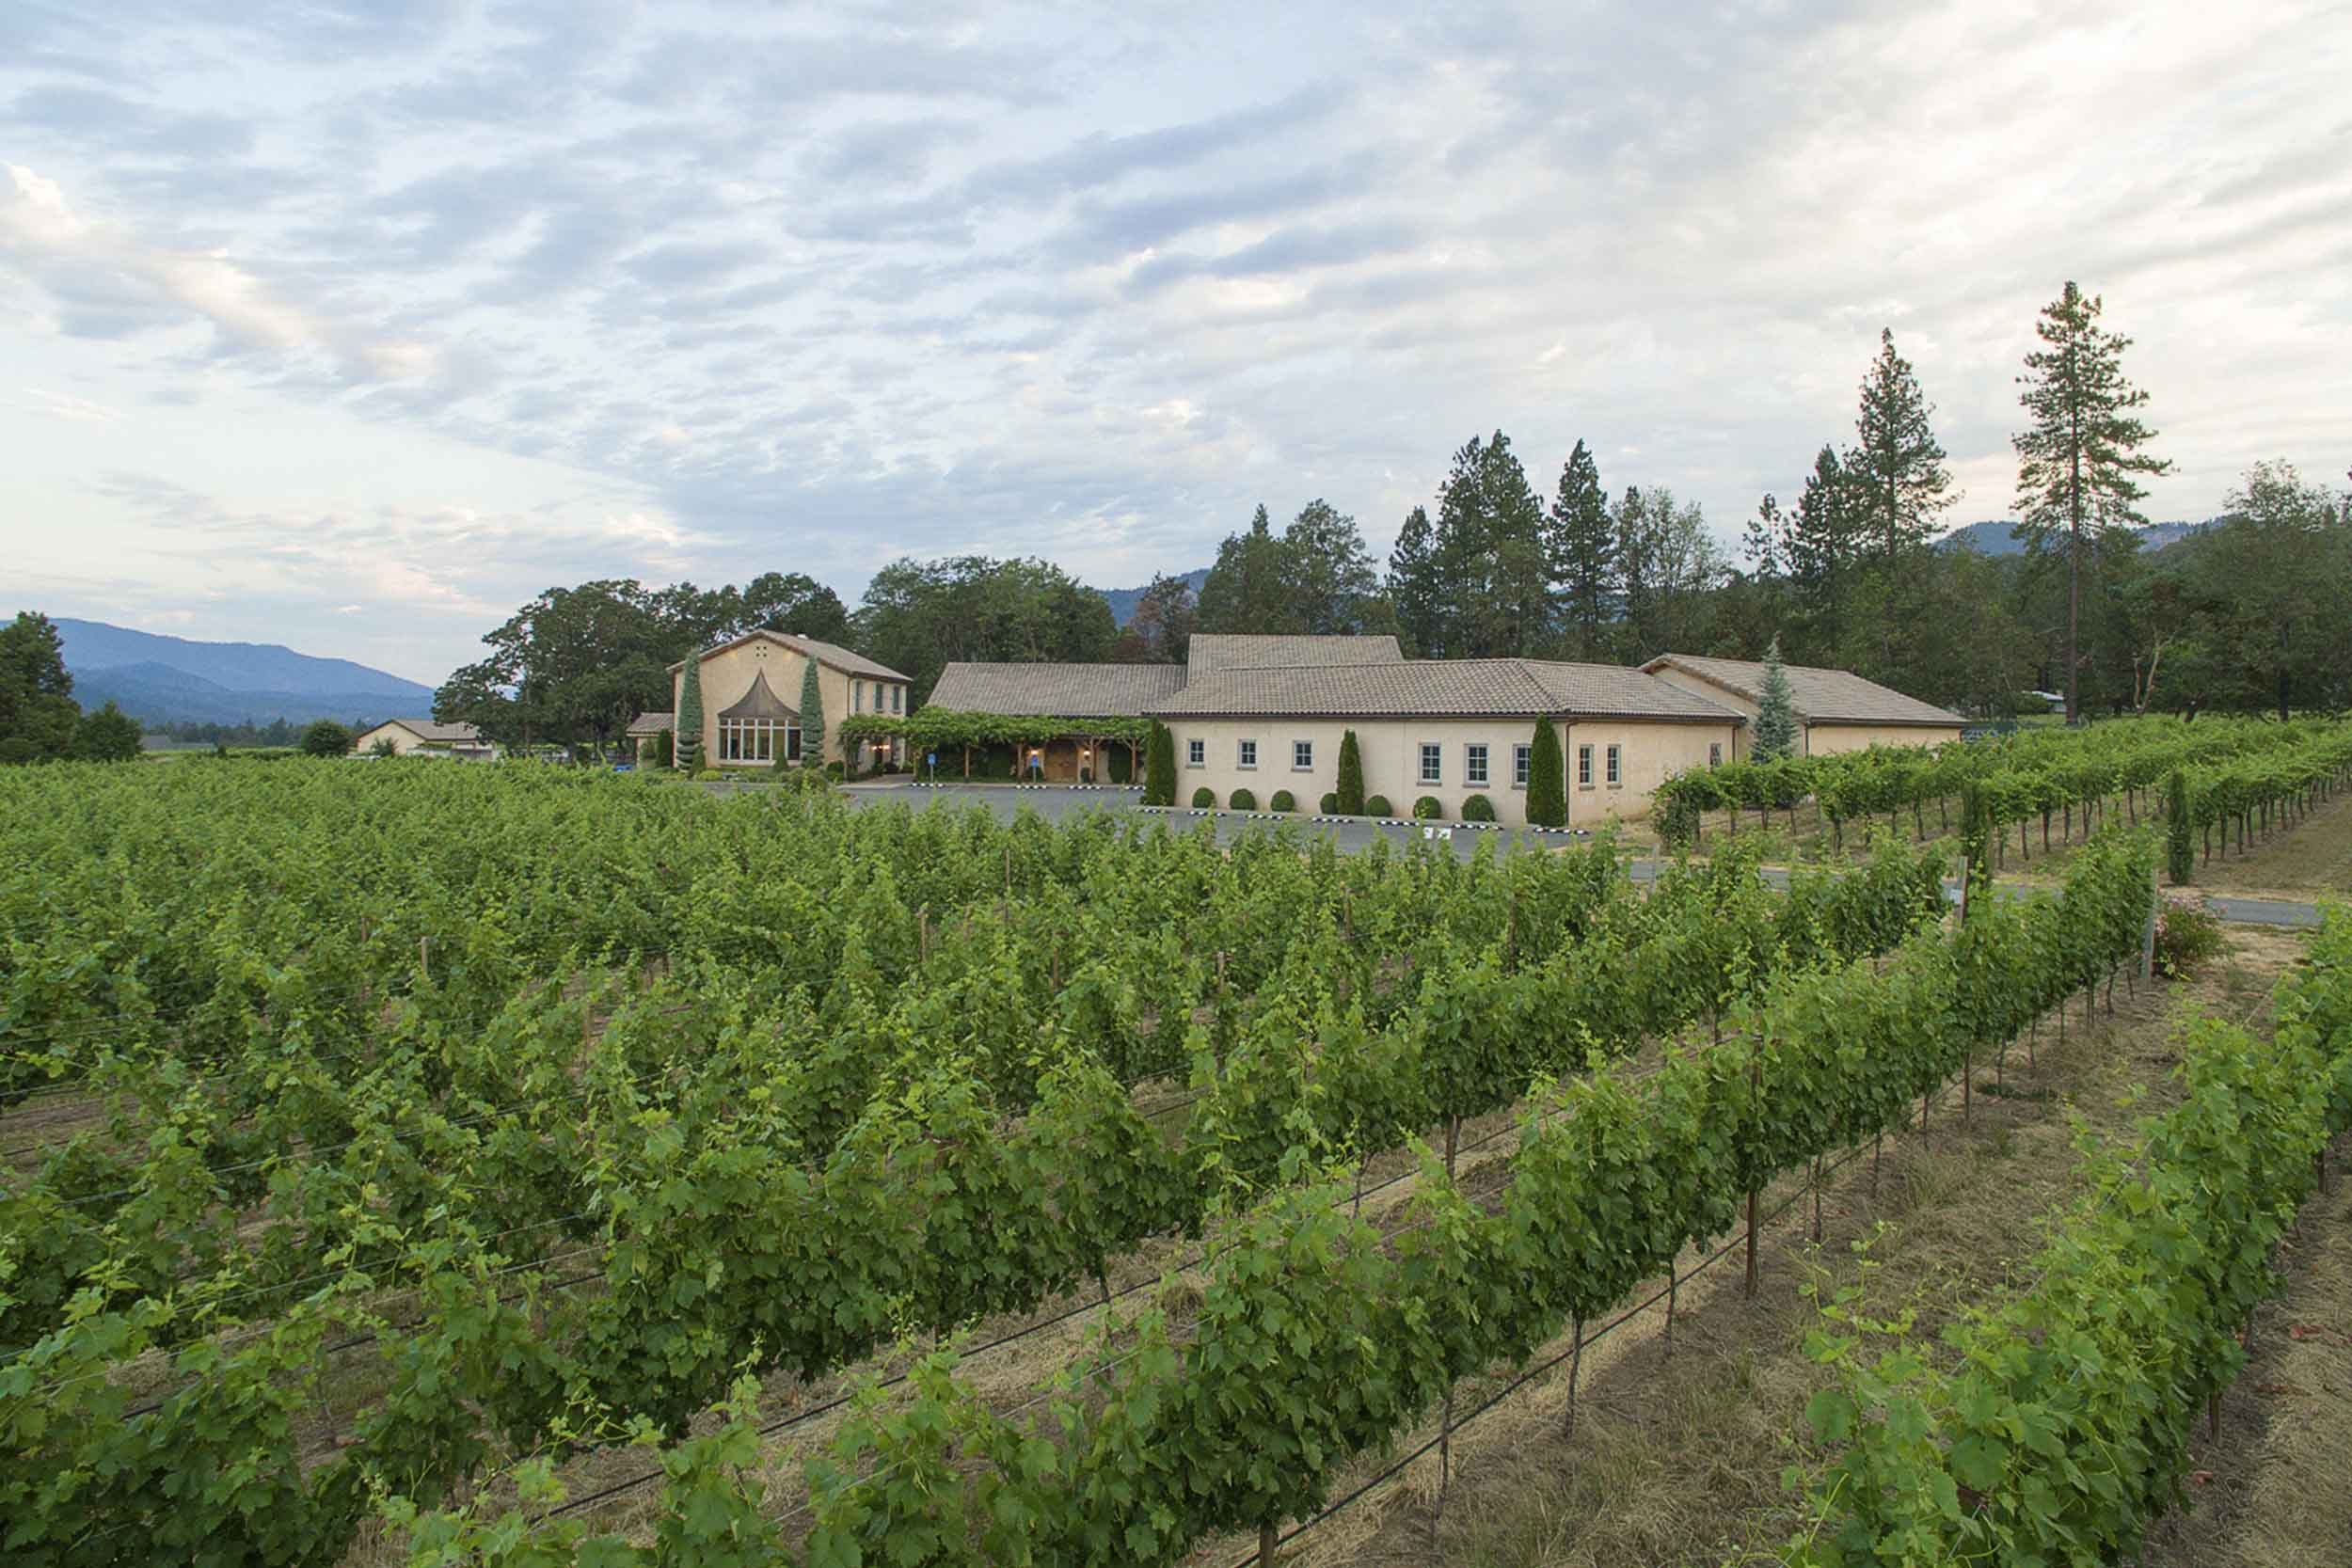 Troon Vineyard near Grants Pass, Oregon,  prides itself in its organic farming methods and its home-irrigated vines.